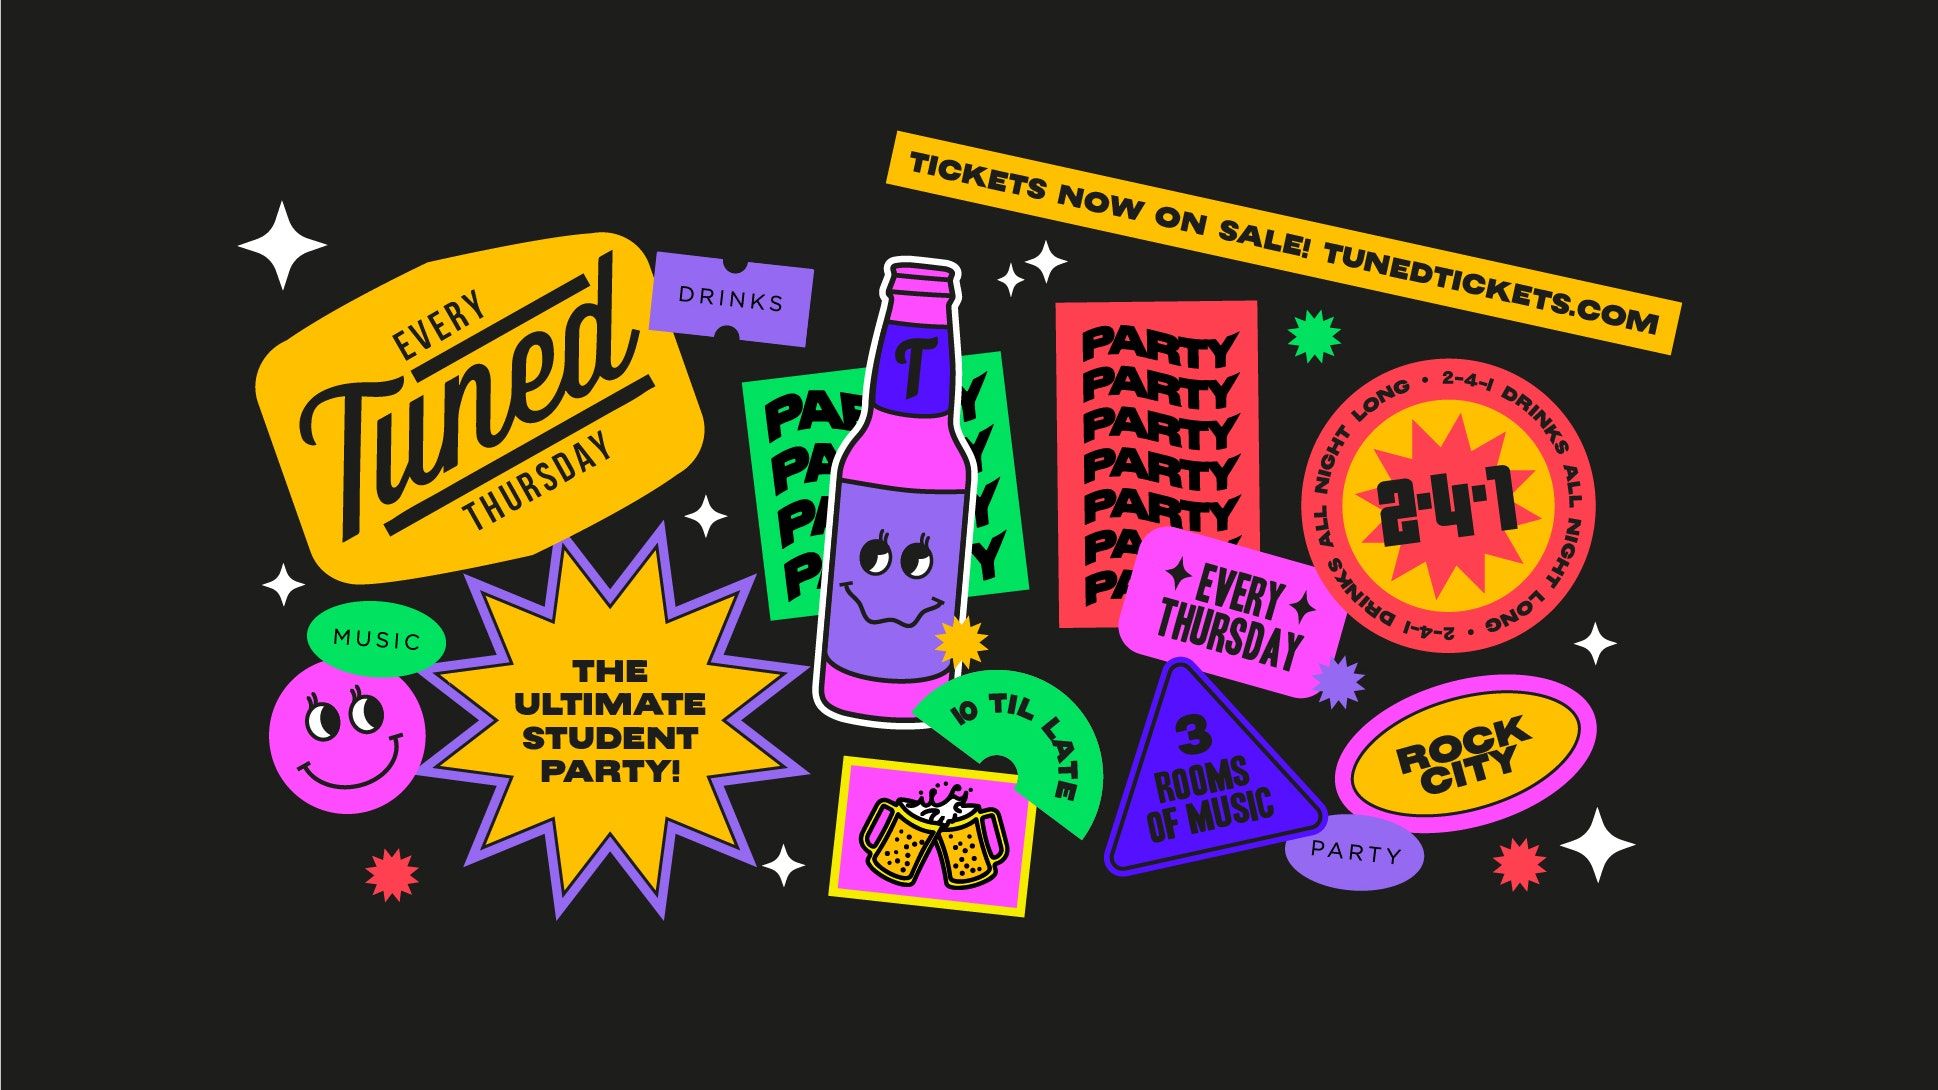 Tuned – Nottingham's Biggest Student Night – 2-4-1 Drinks All Night Long – 30/09/21  (ADVANCE TICKETS SOLD OUT – PAY ON THE DOOR AVAILABLE ON THE NIGHT)